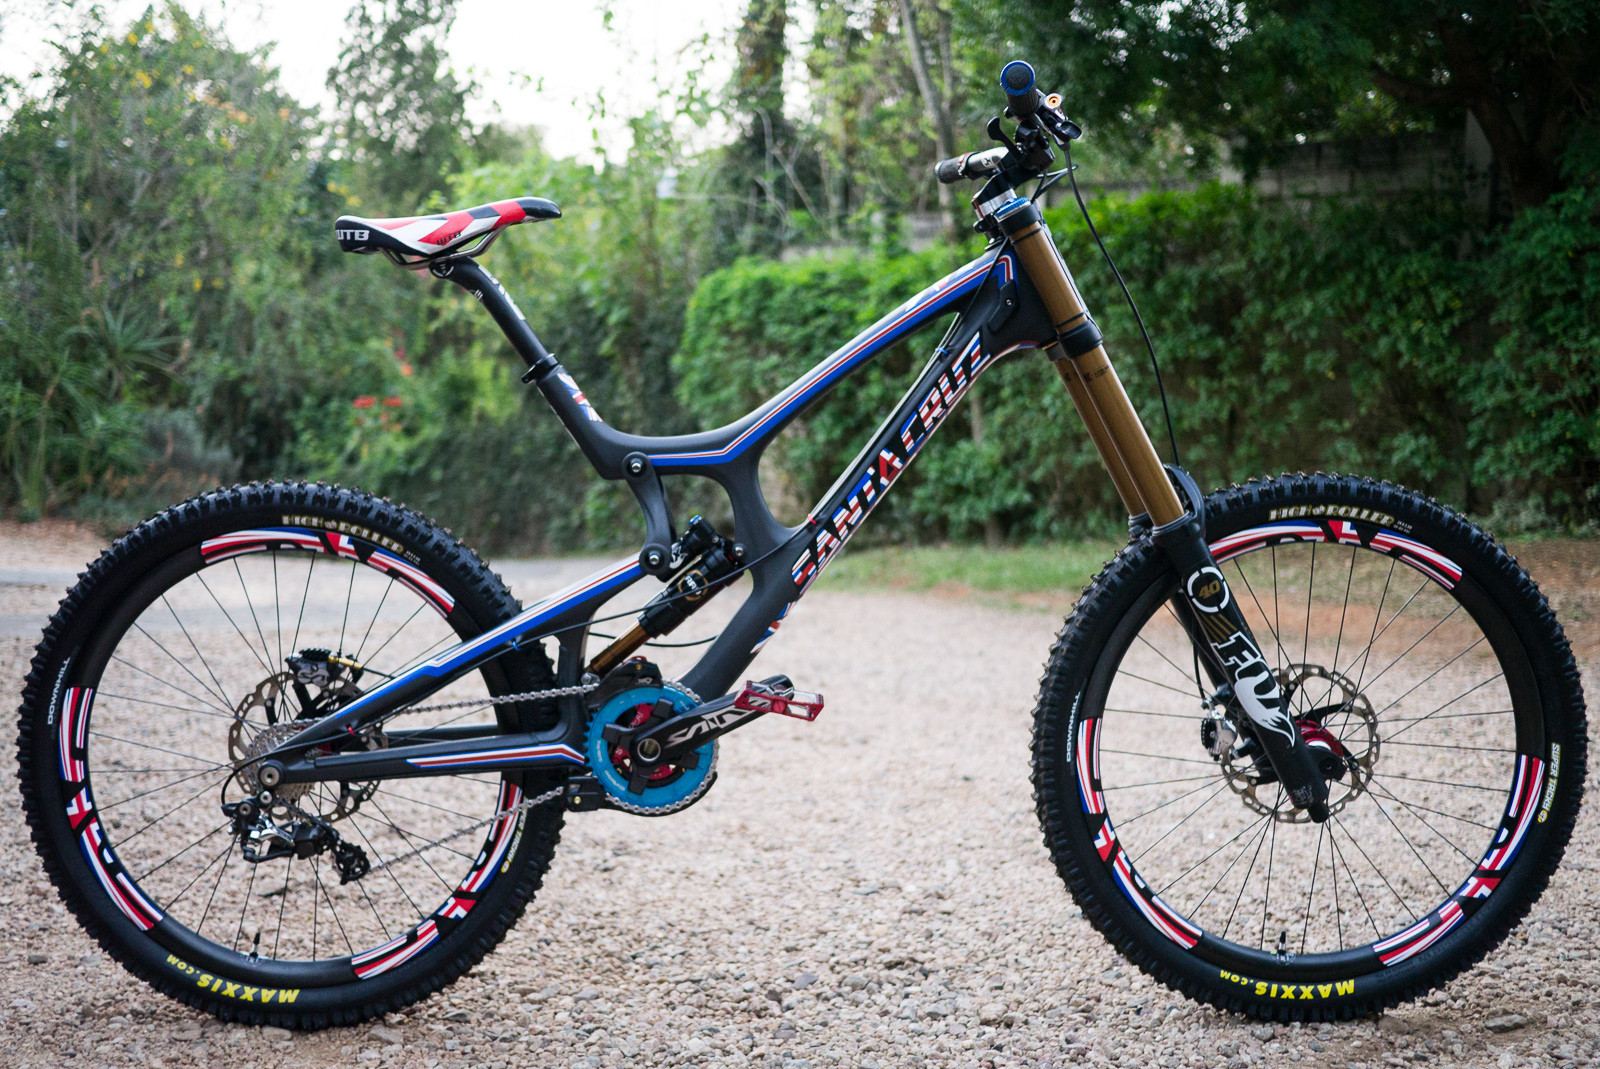 Steve Peat's World Championship Santa Cruz V10c - World Championships Bikes and Gear 2013 - Mountain Biking Pictures - Vital MTB